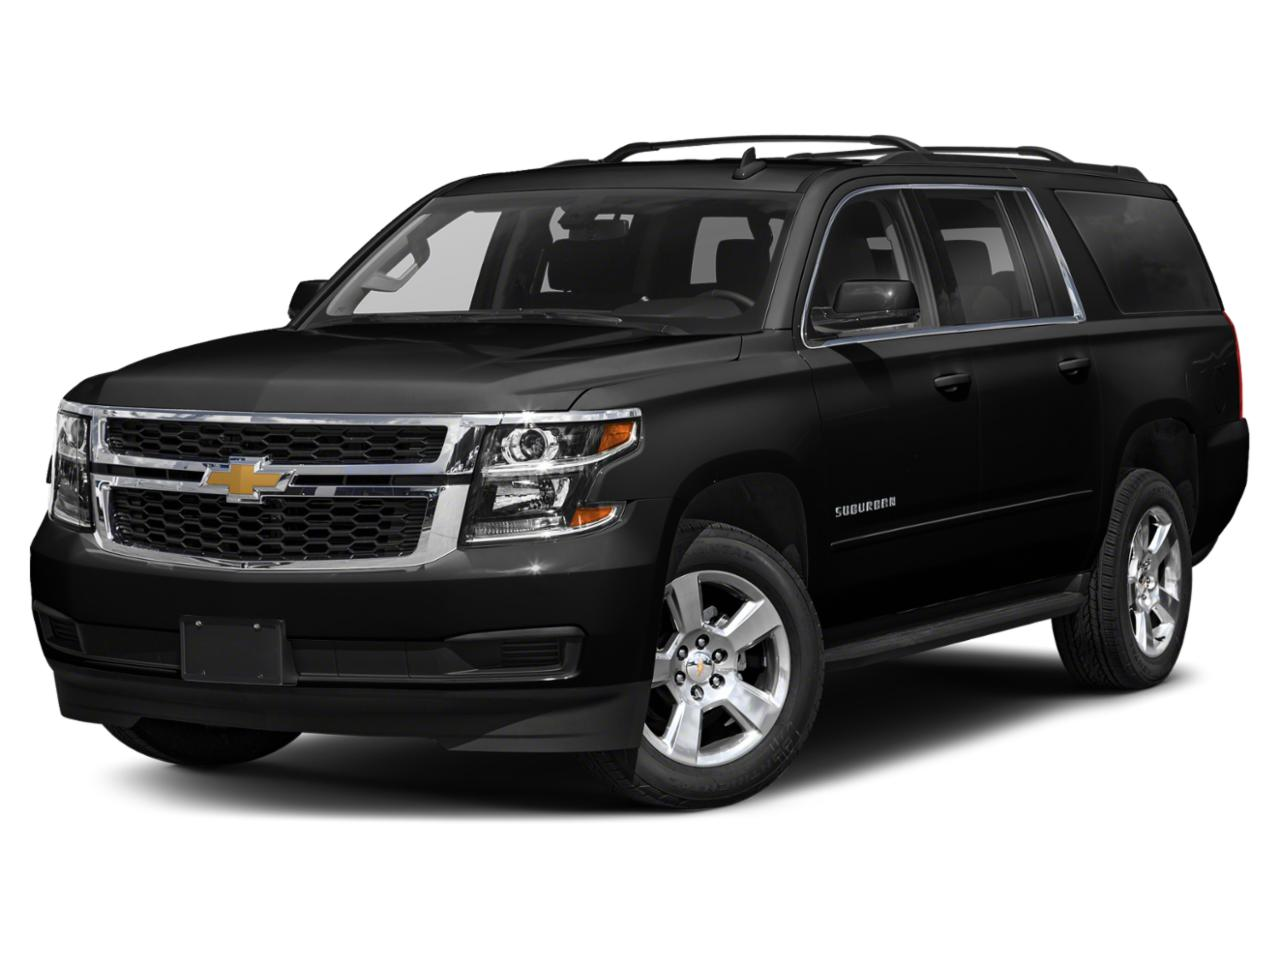 2018 Chevrolet Suburban Vehicle Photo in Rockville, MD 20852